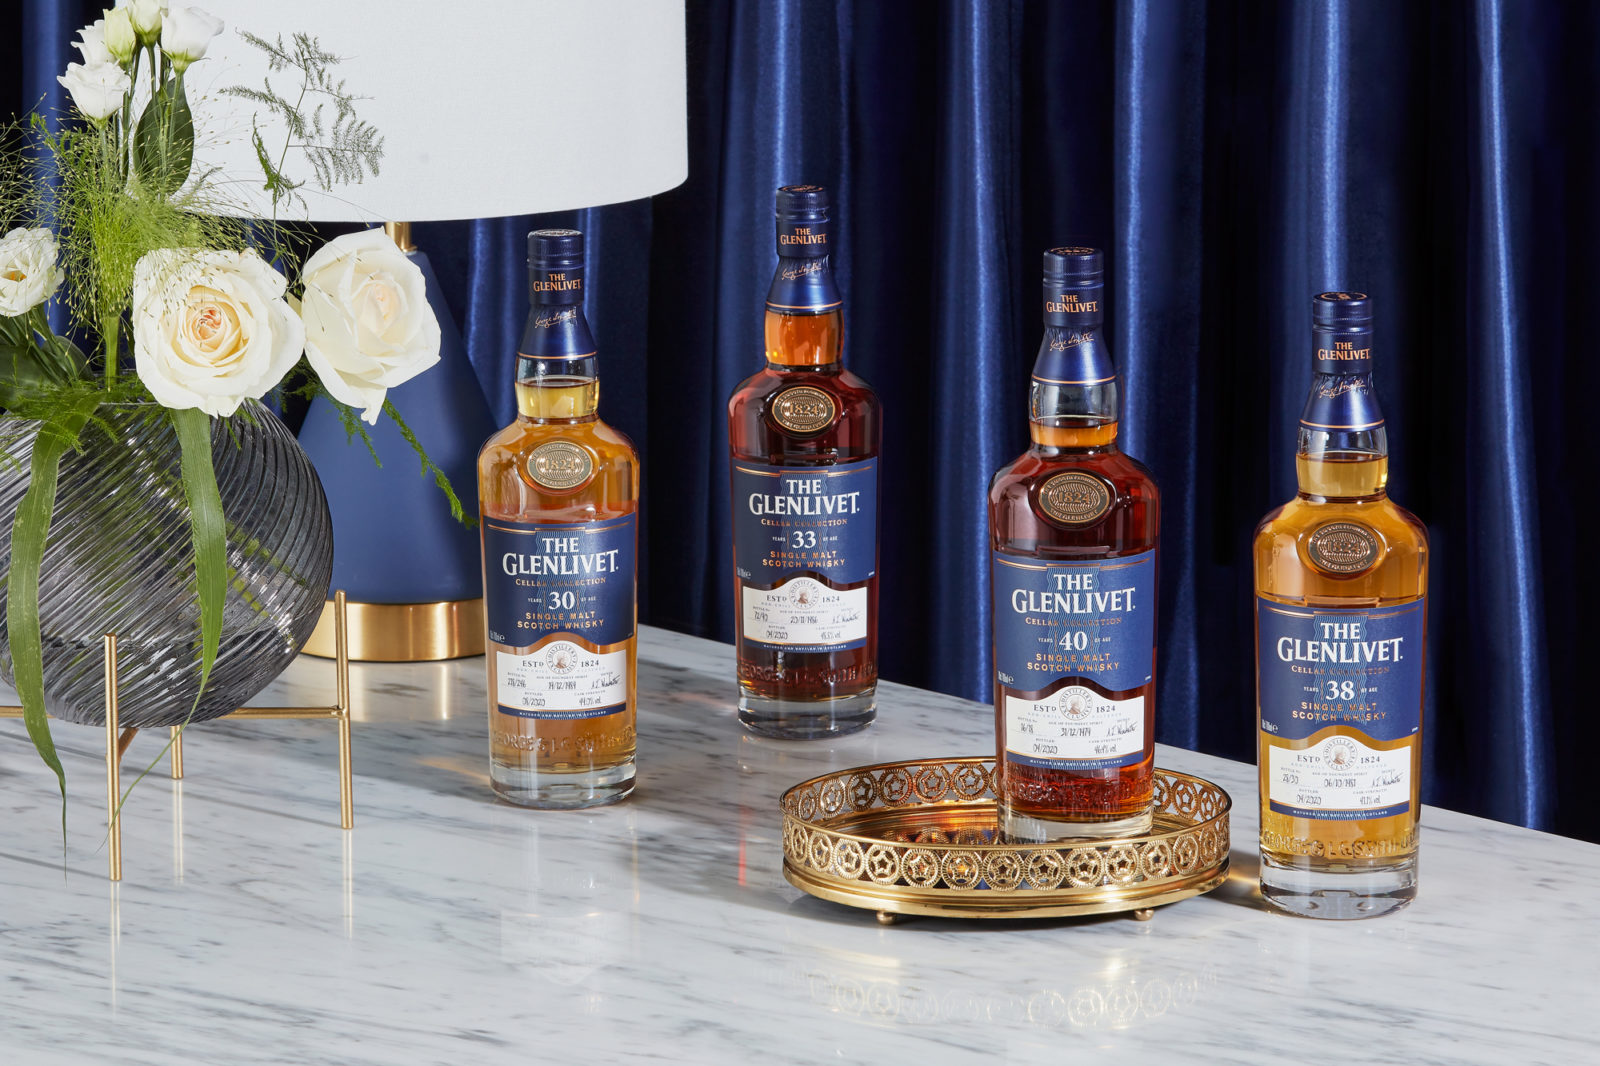 The Glenlivet, Aberlour And Scapa Release Rare Aged Collections Of Whisky photo